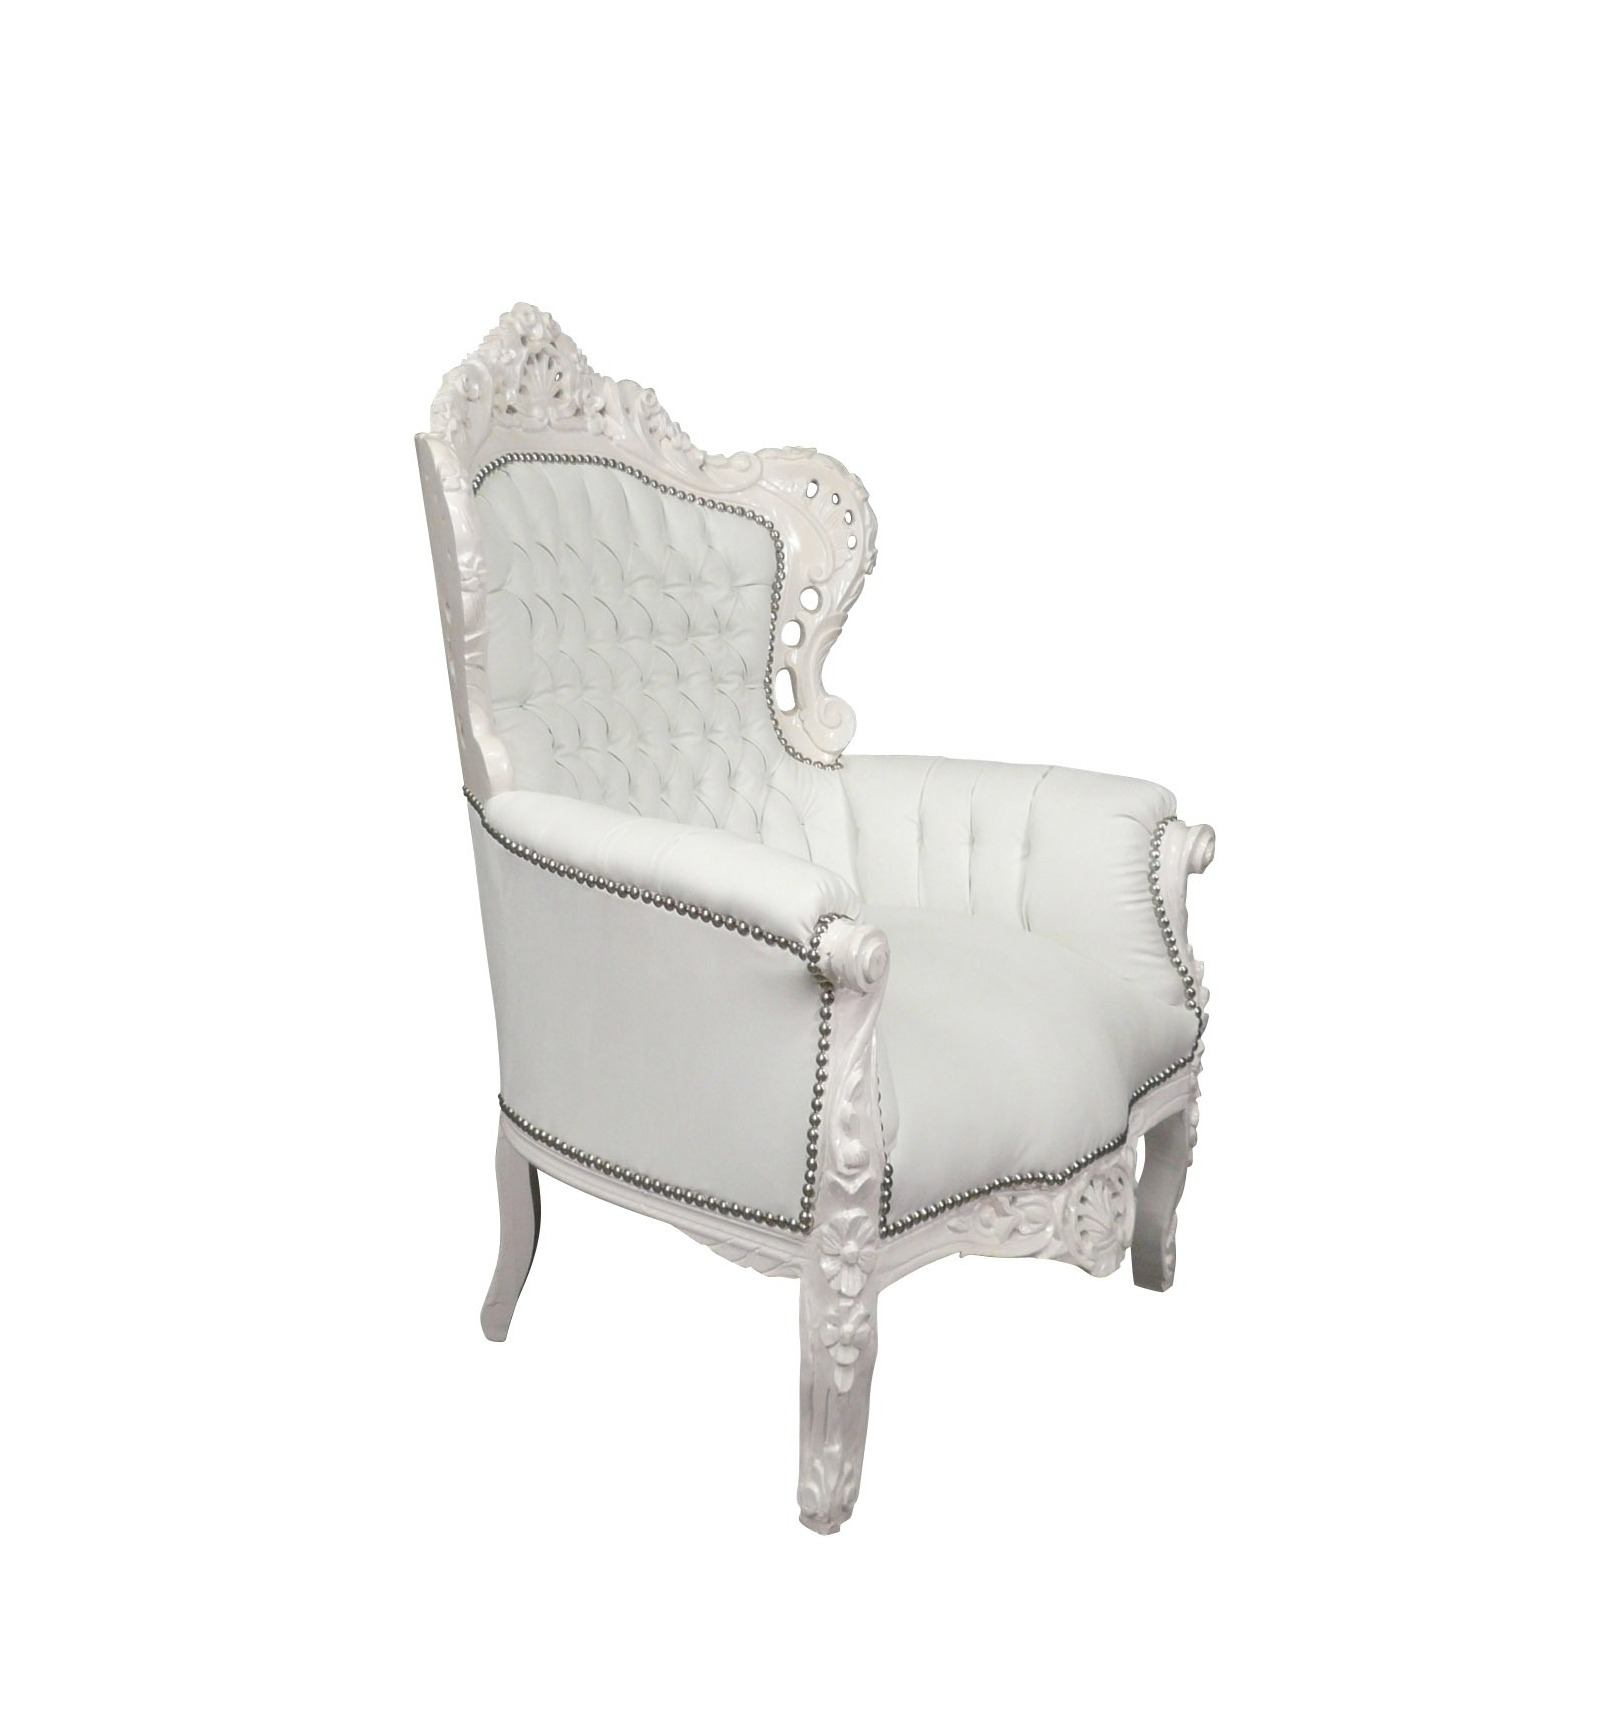 fauteuil baroque blanc meubles pour une deco moderne et l gante. Black Bedroom Furniture Sets. Home Design Ideas